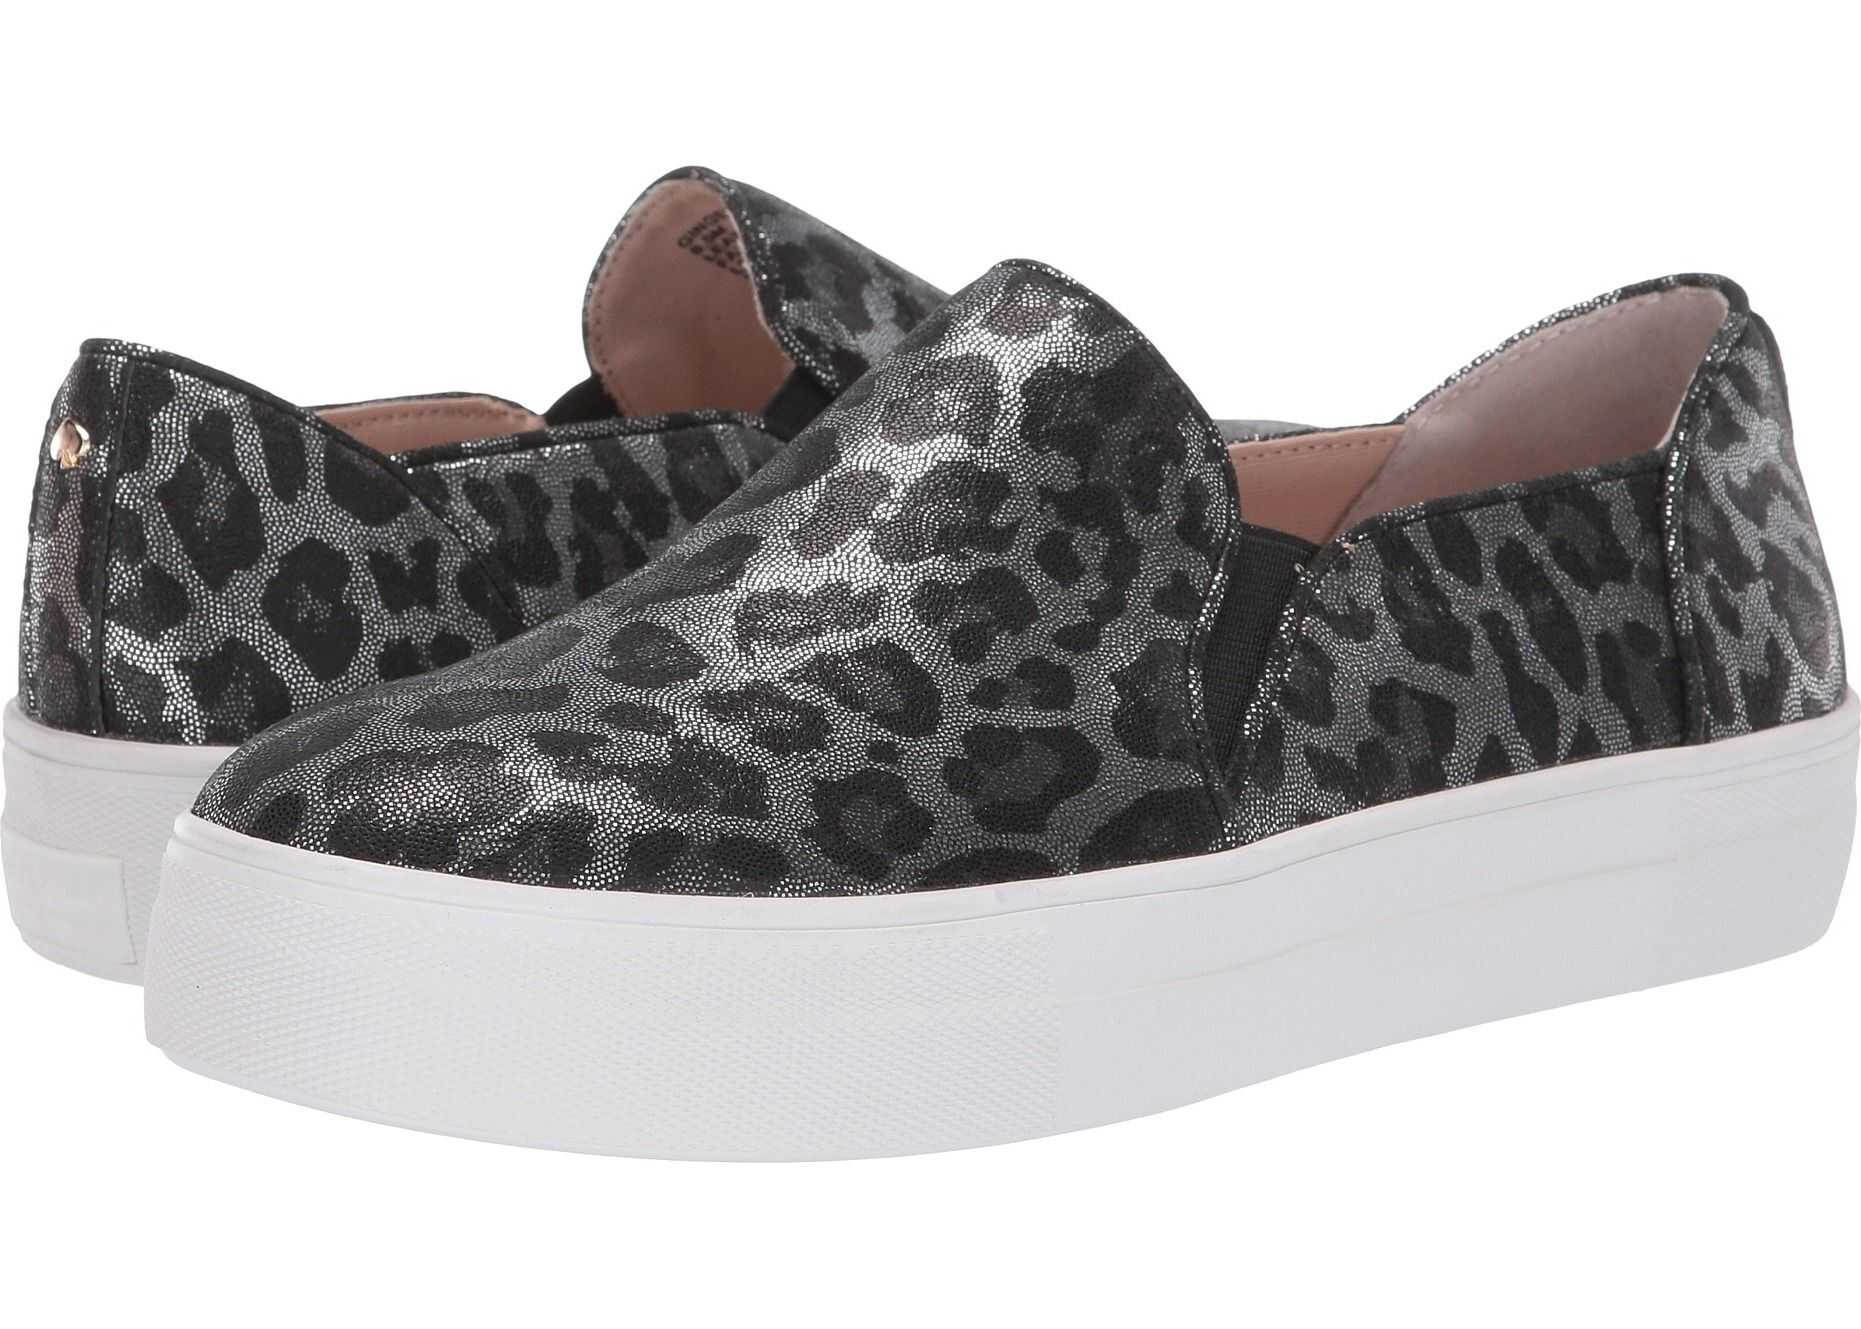 Kate Spade New York Ginger Grey Metallic Leopard